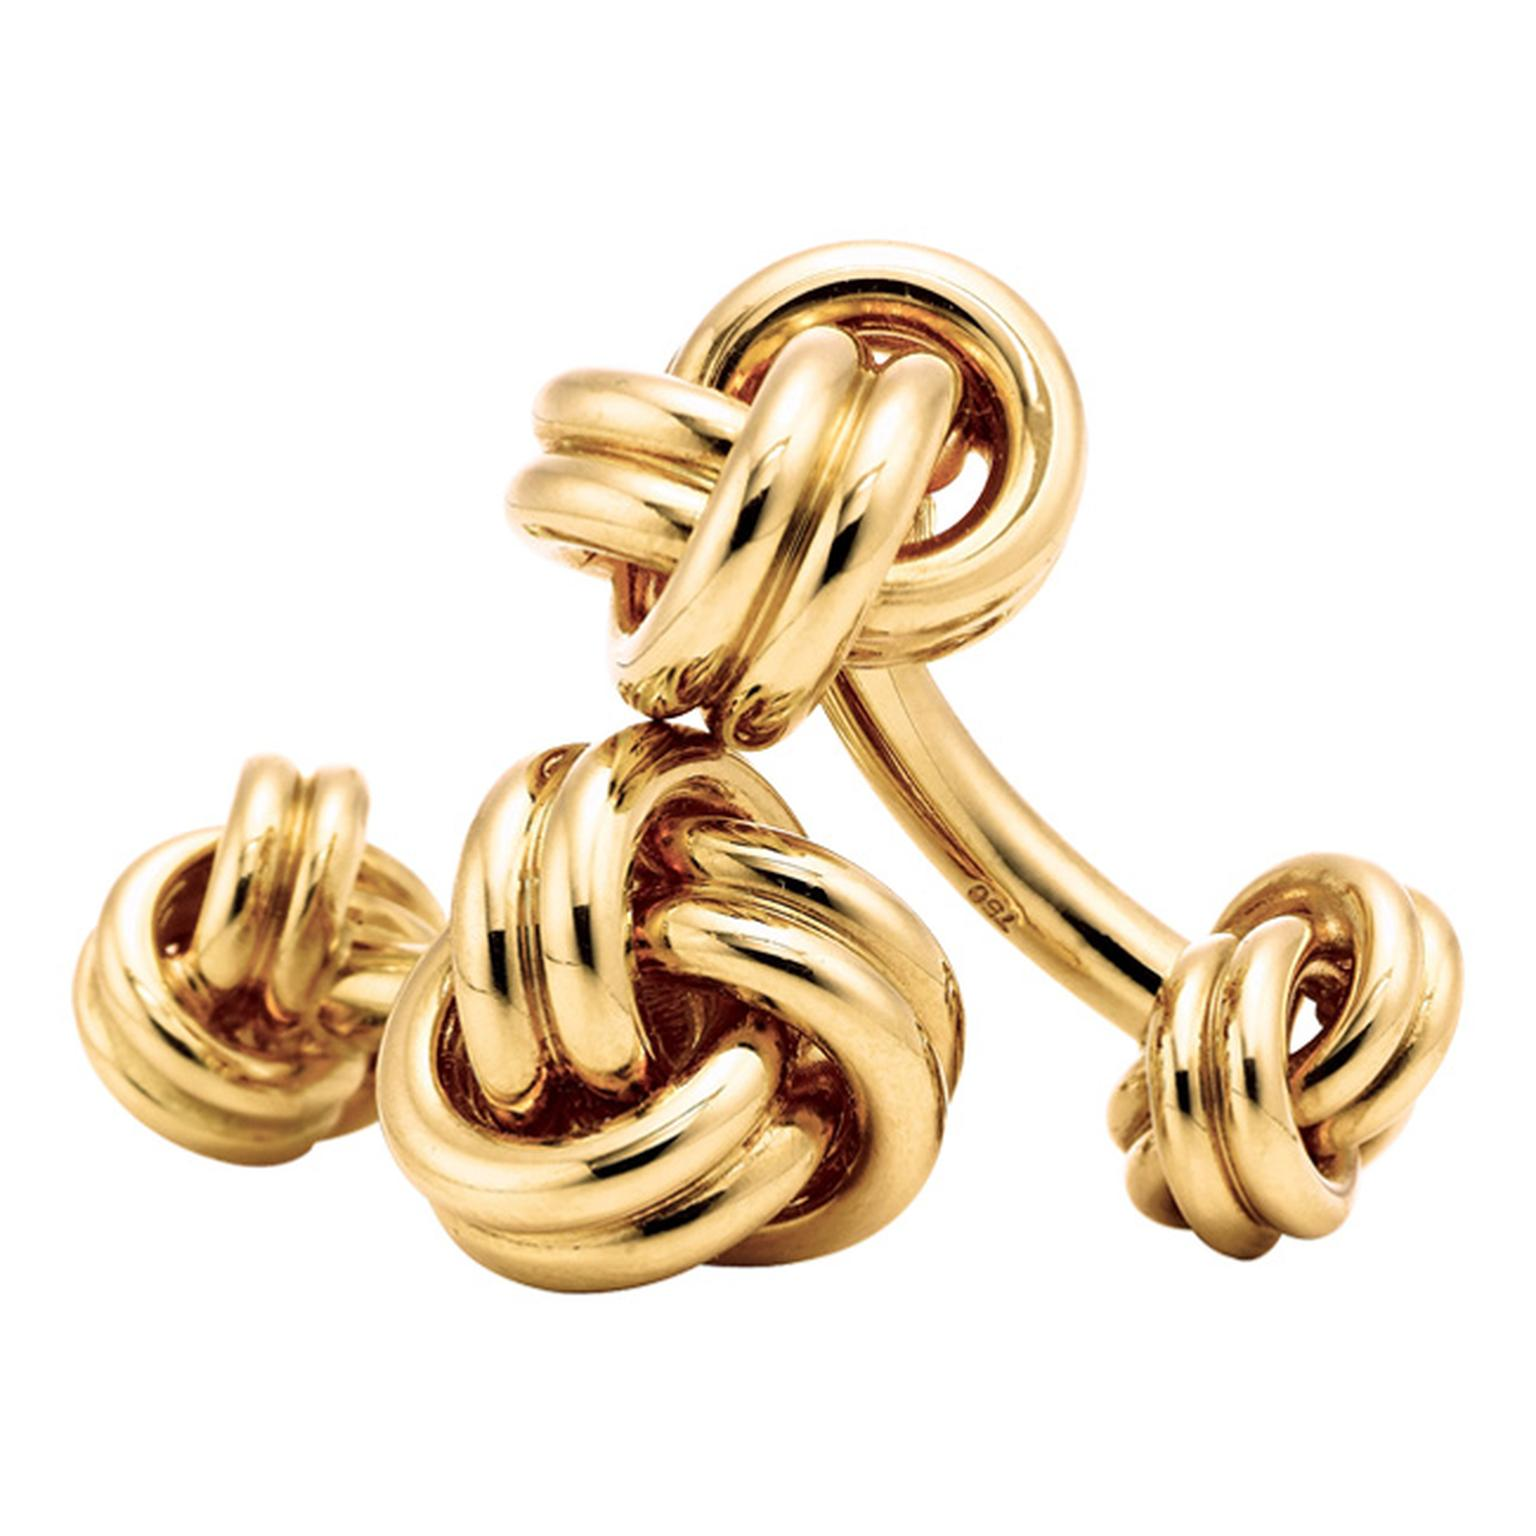 Tiffany & Co Gold Knot Cufflinks_20130412_Main